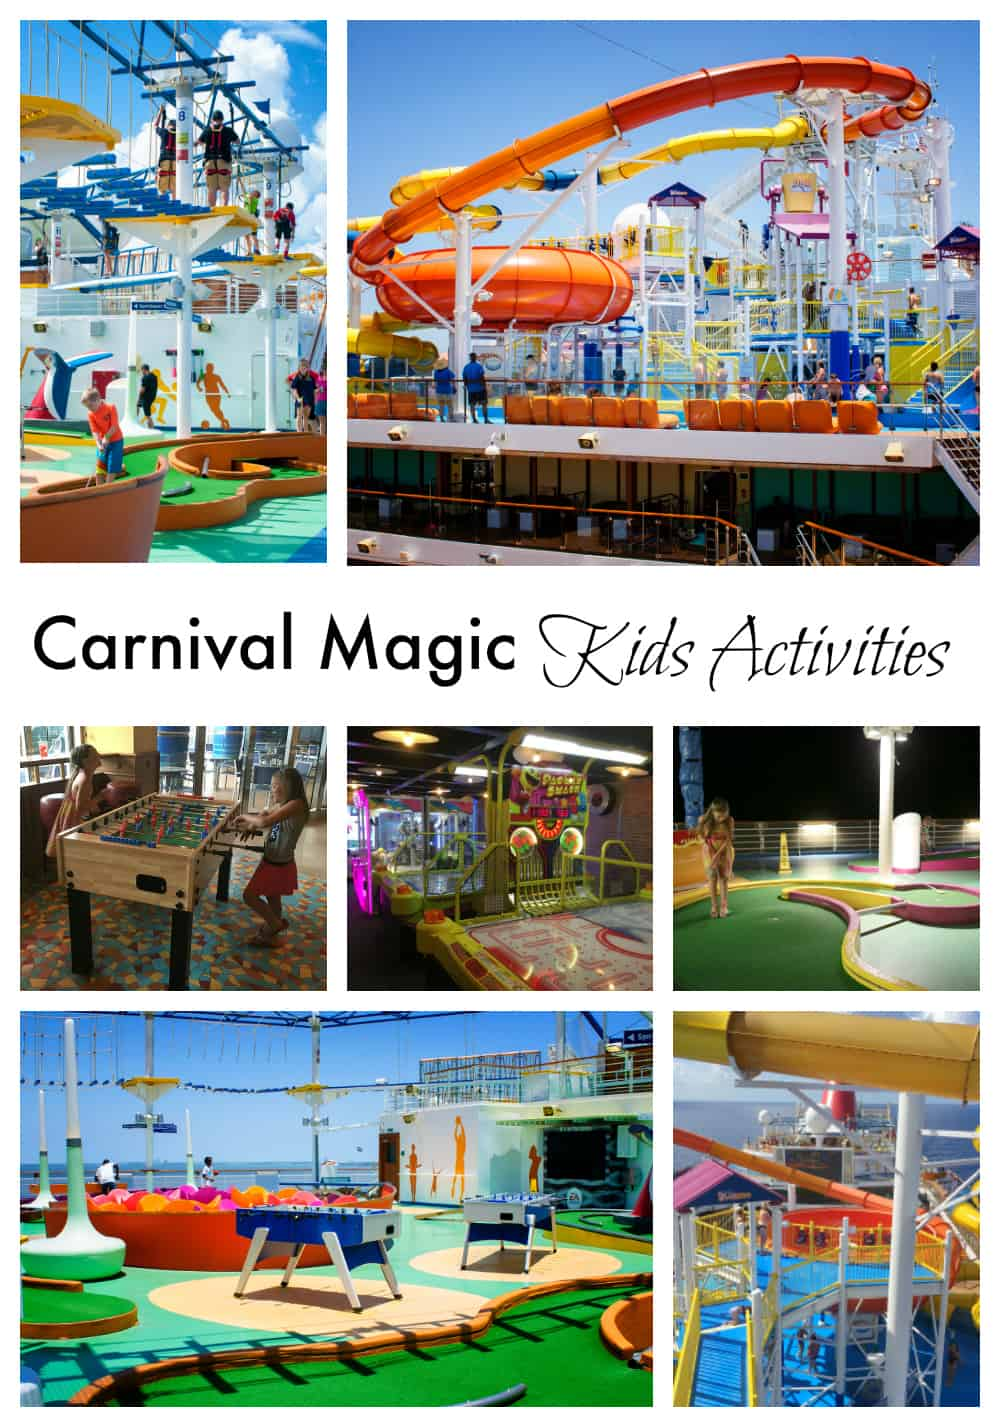 Carnival Magic Kids Activities